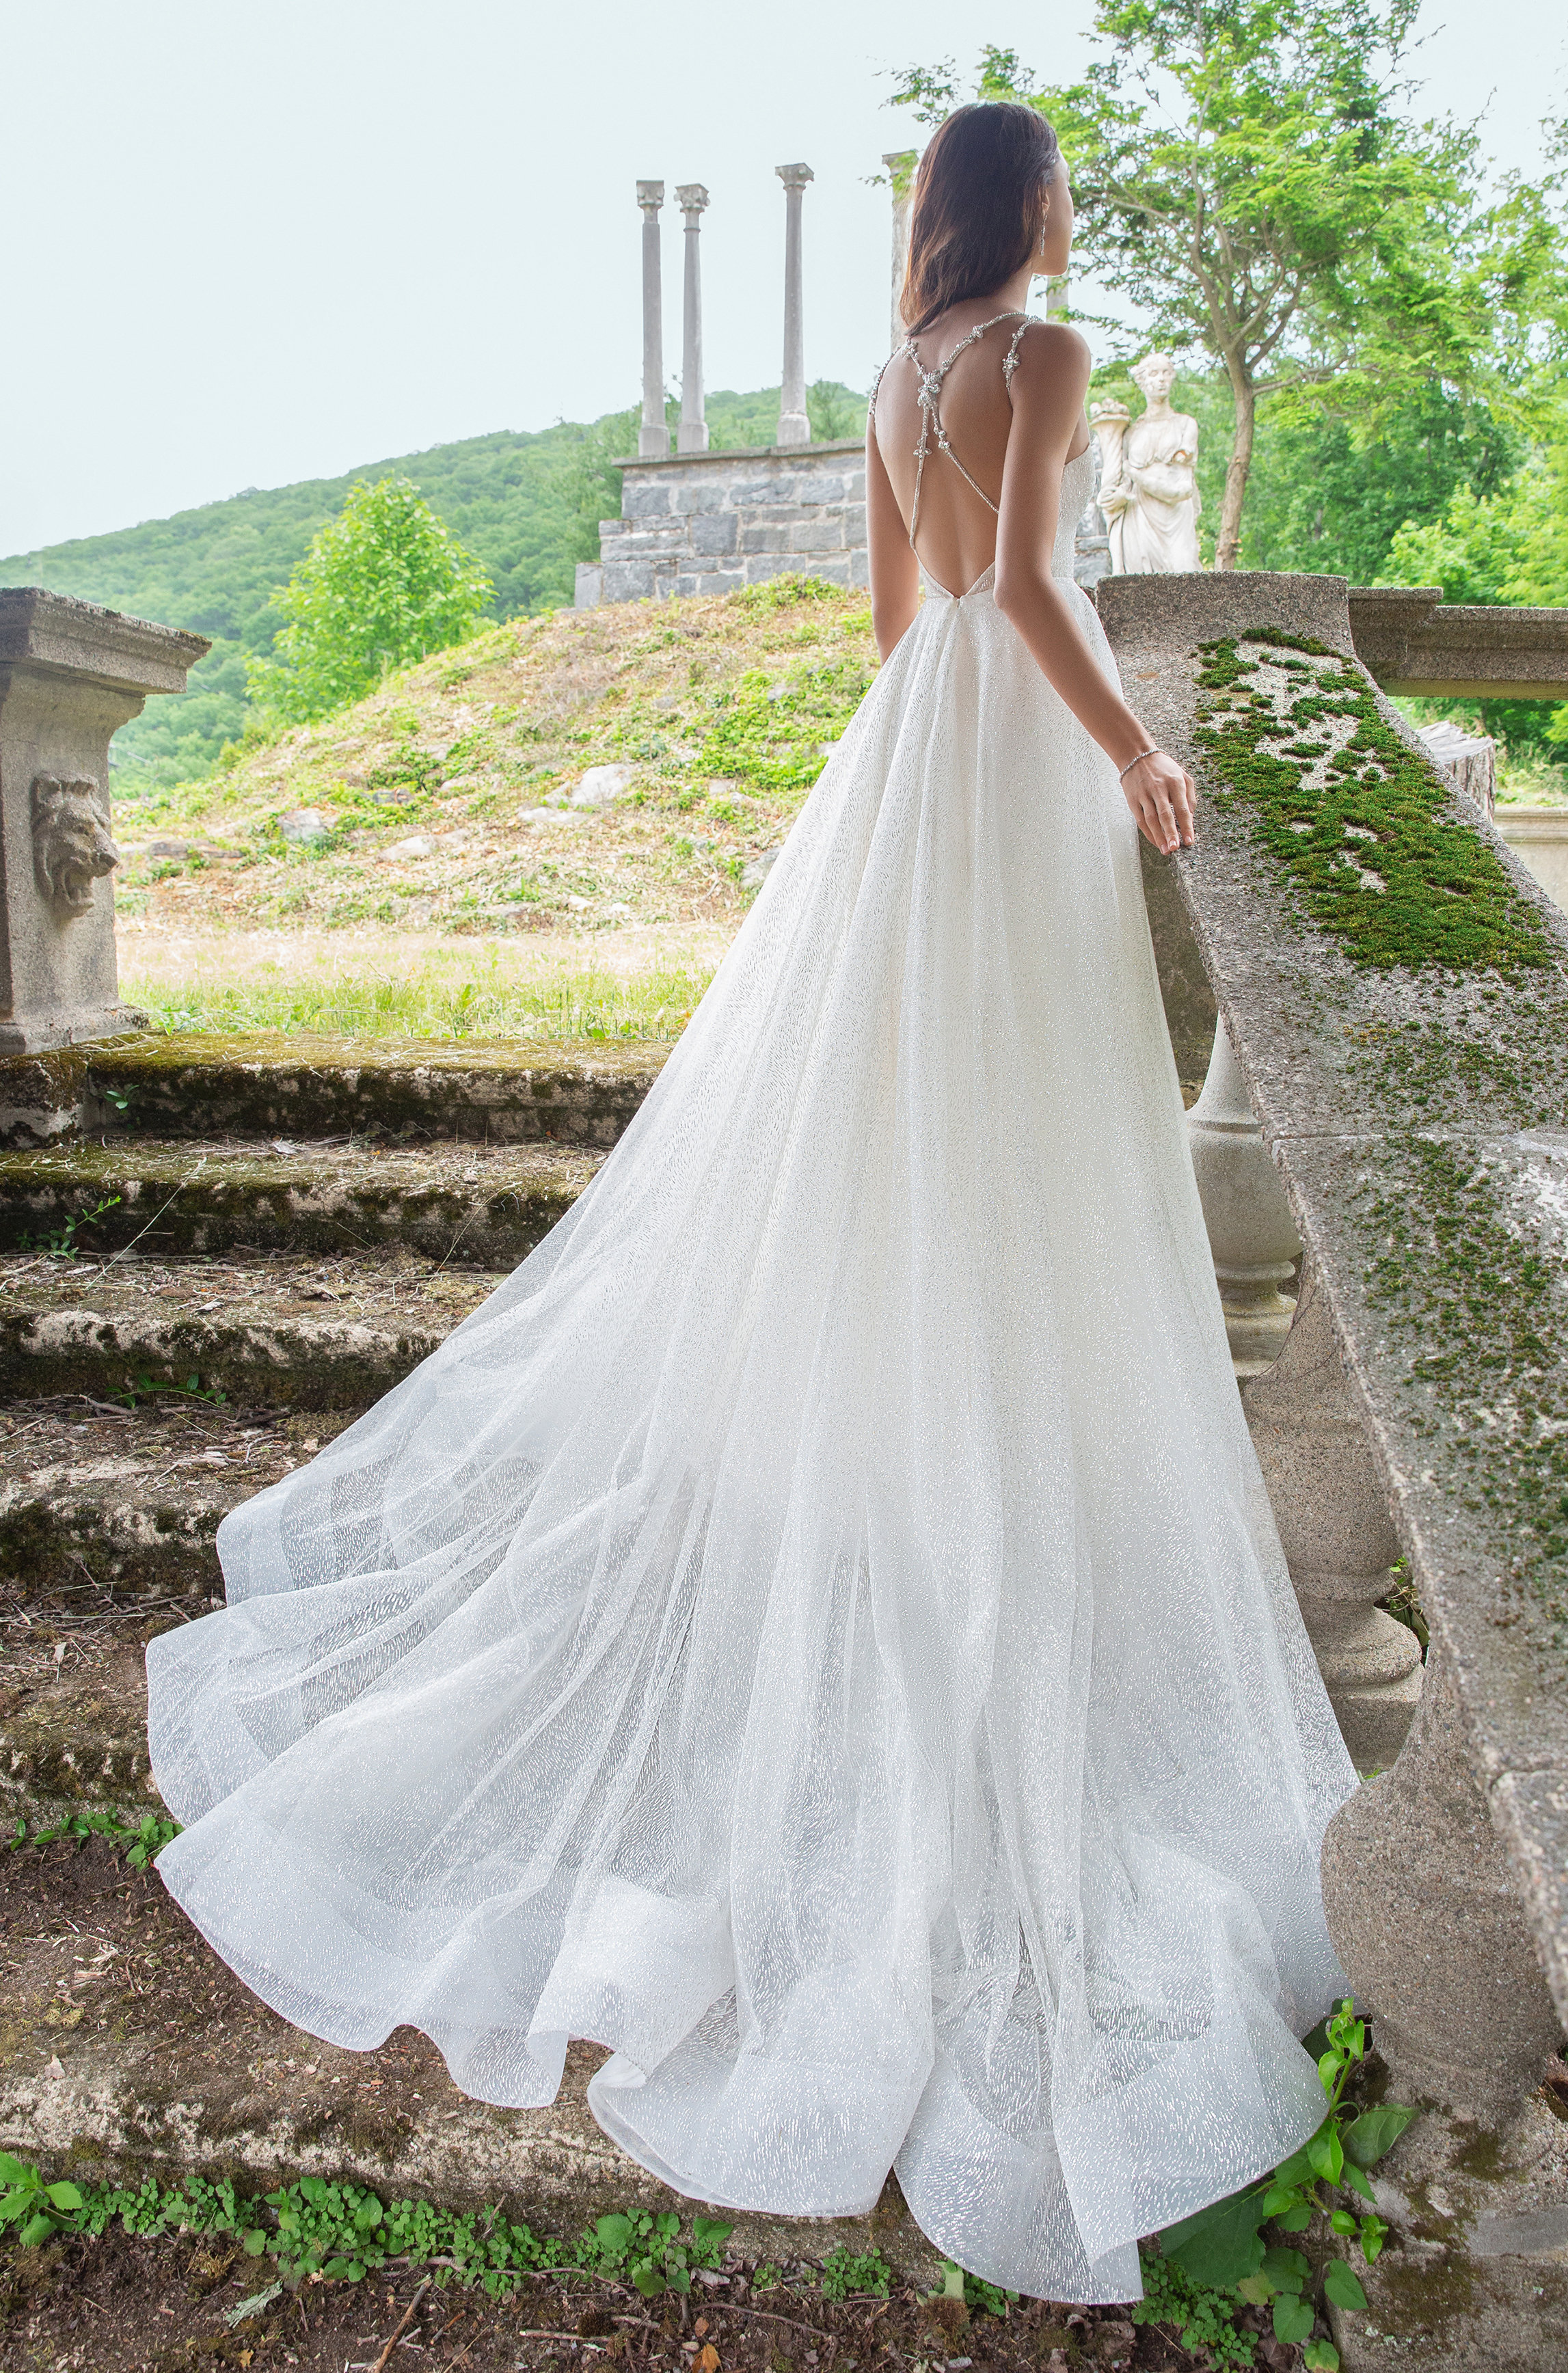 Bridal Gowns And Wedding Dresses By Jlm Couture Style 3851 Yesi